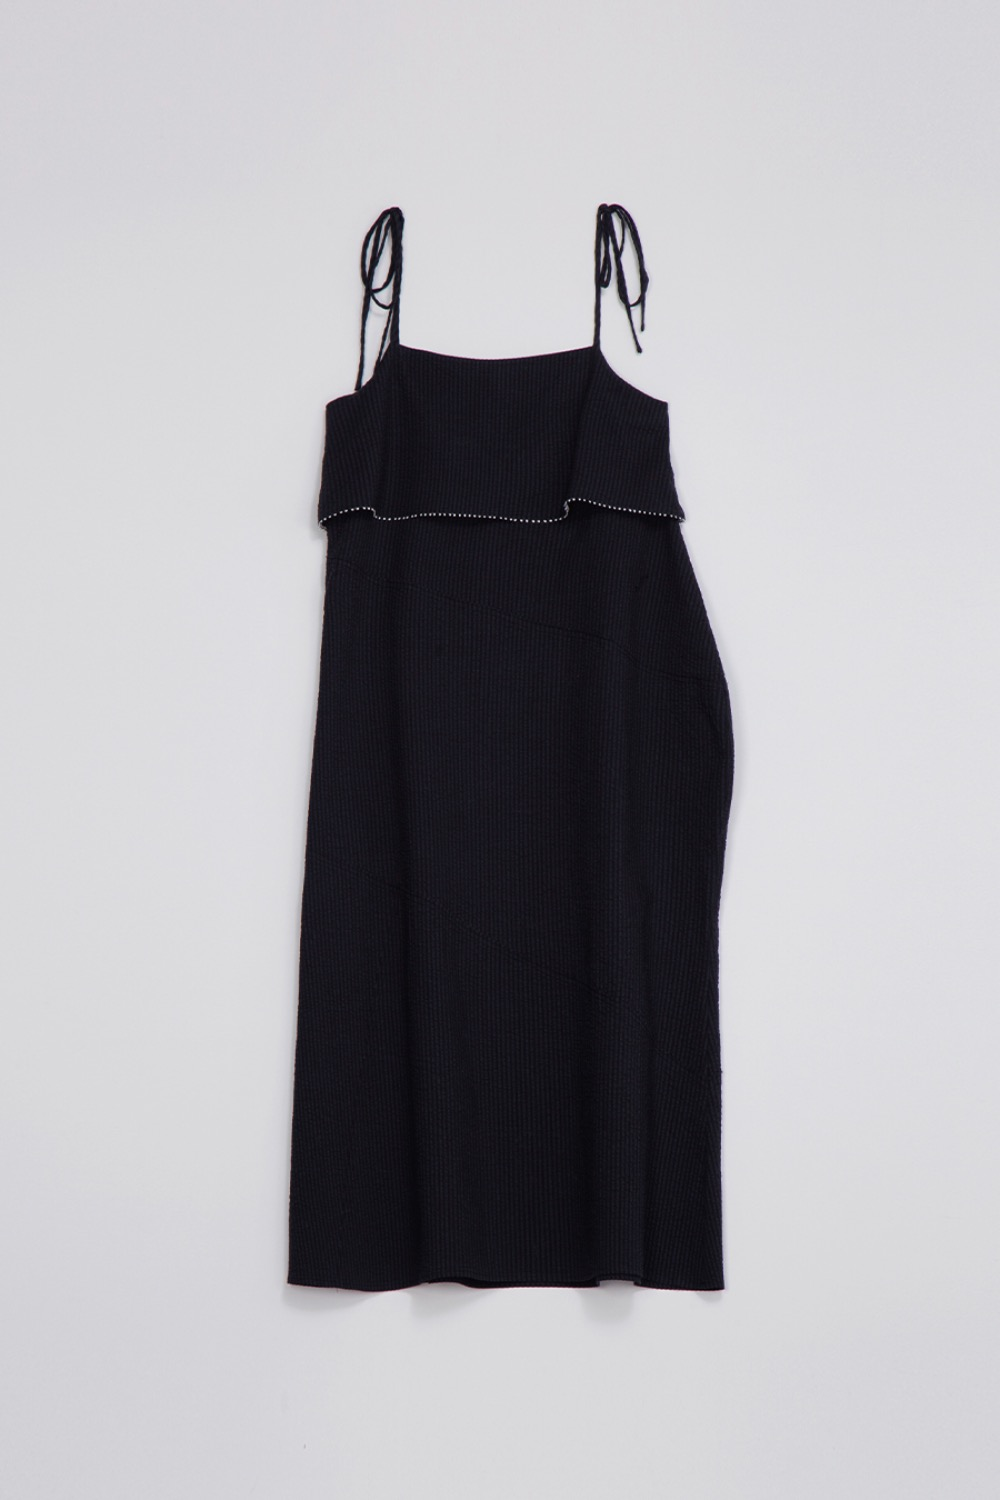 EN FETE SLIP DRESS - BLACK SEERSCUKER